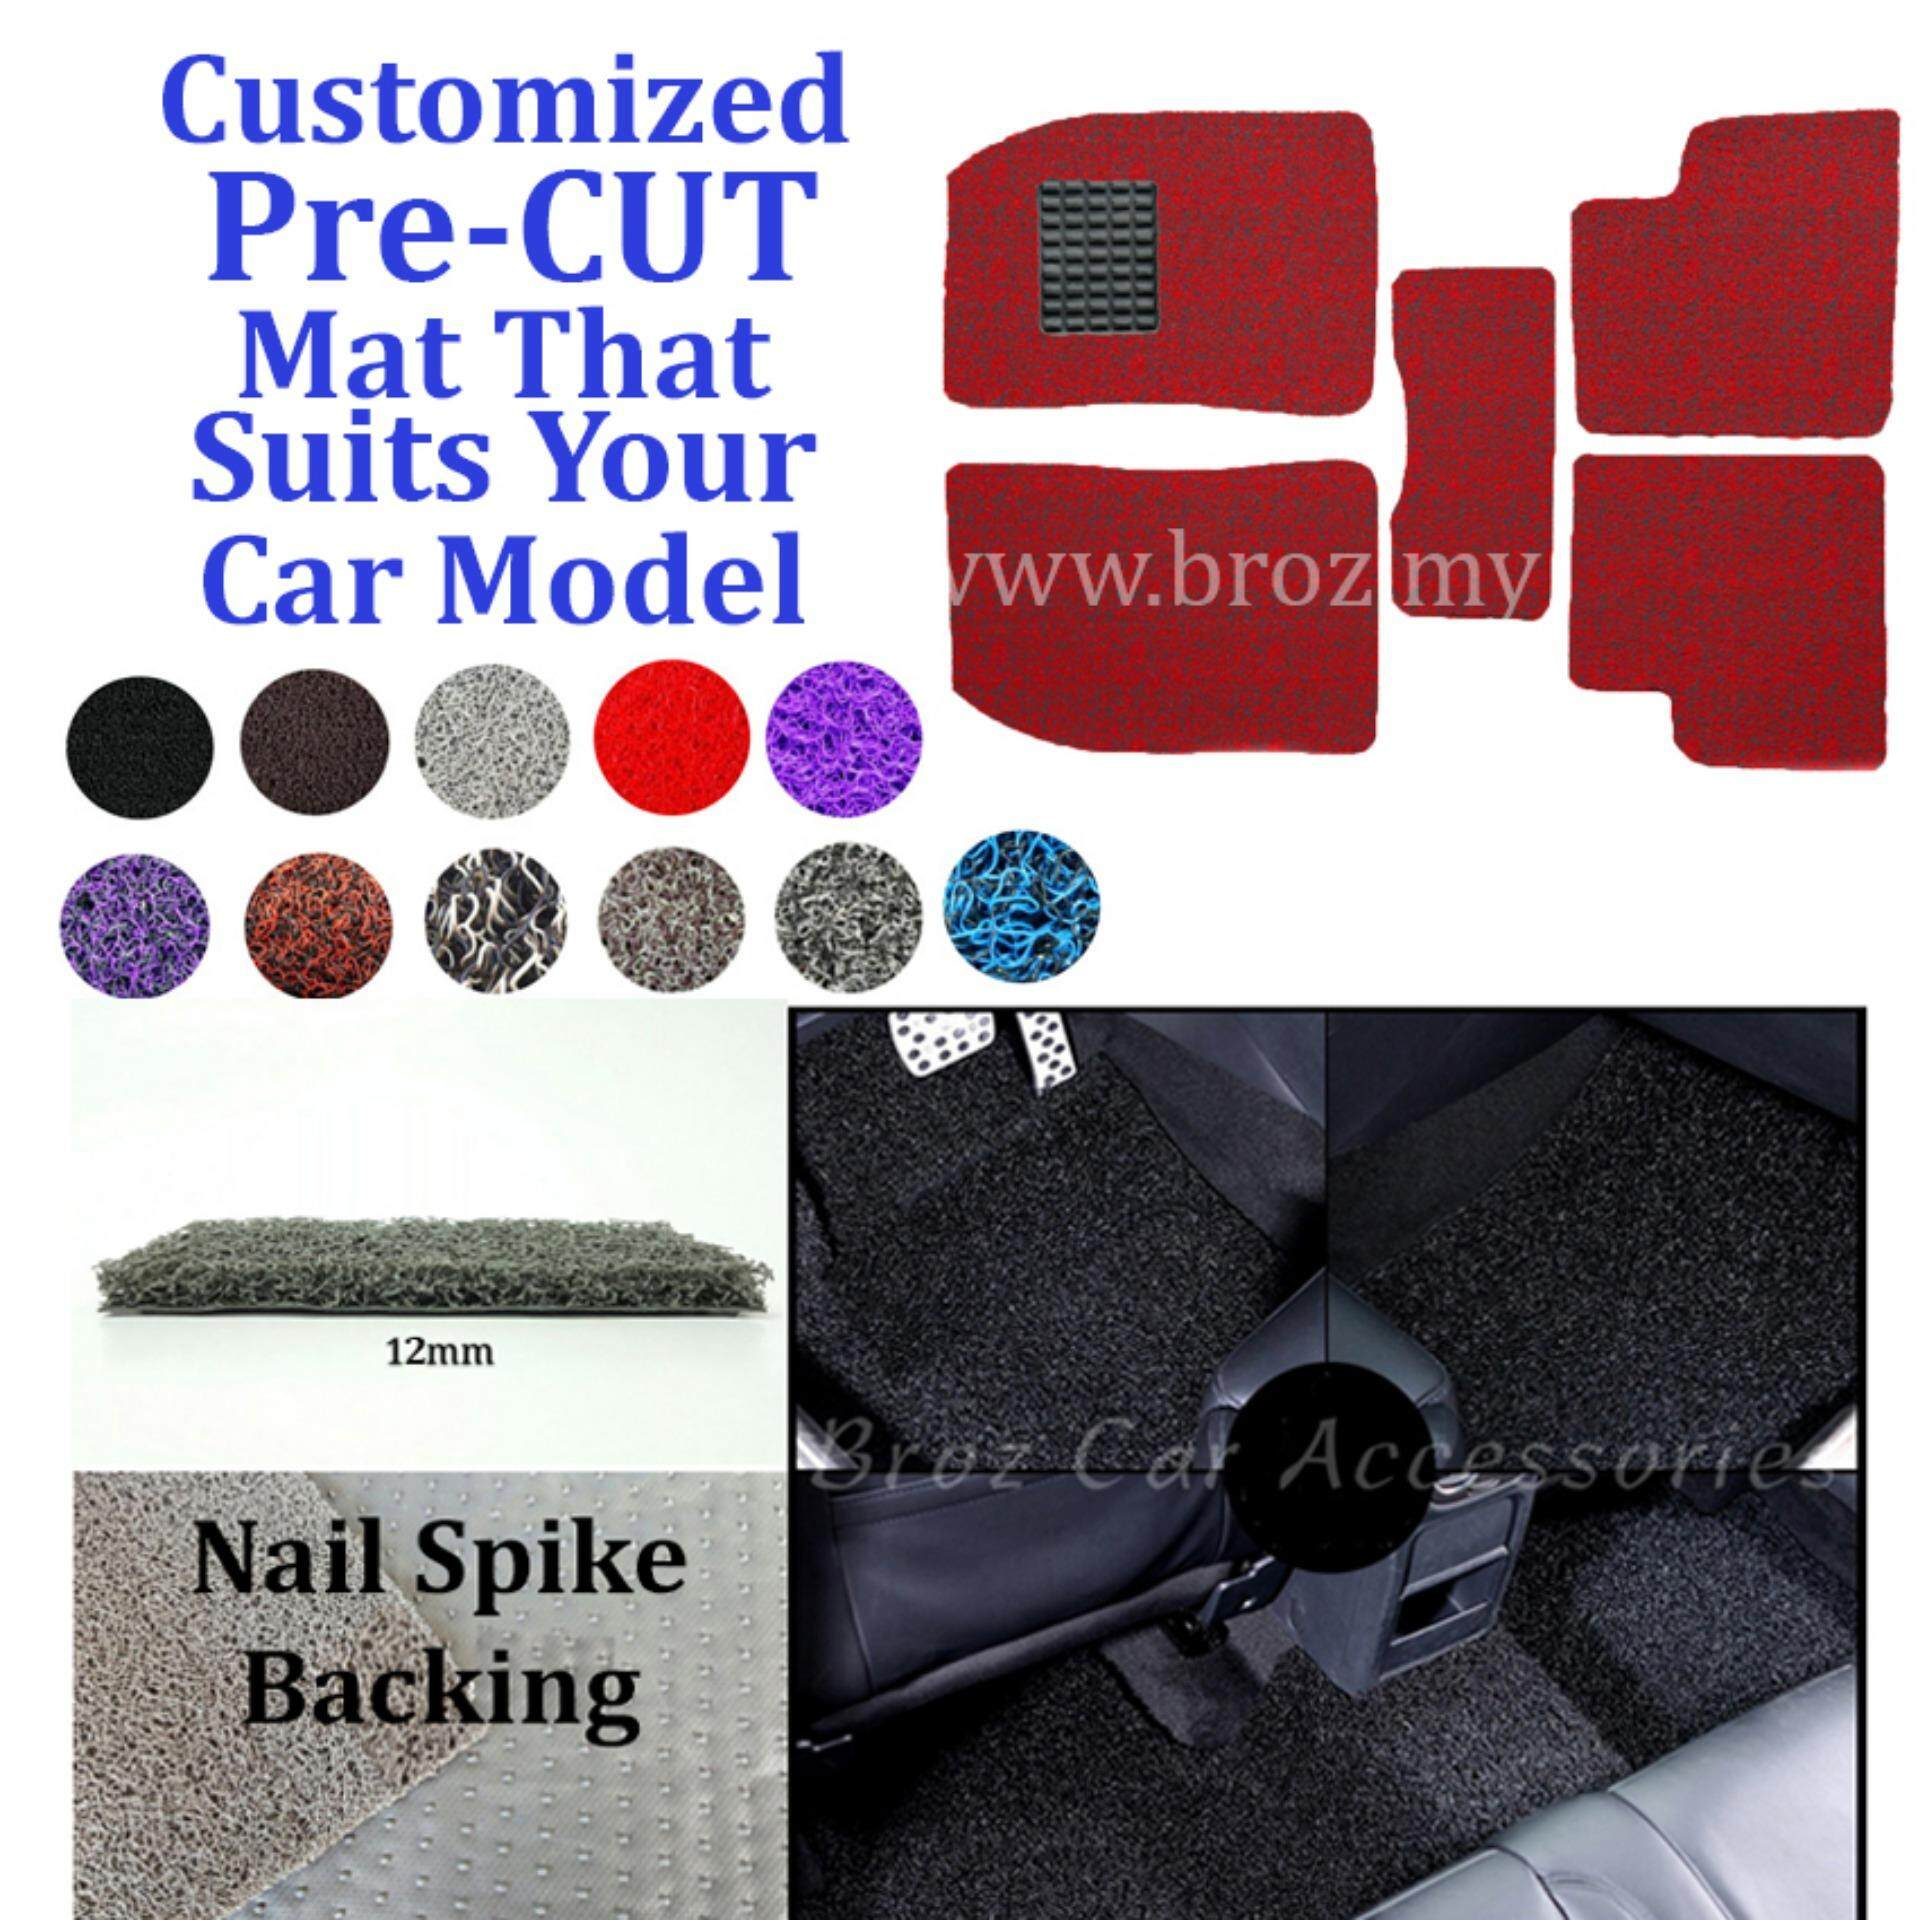 Broz Mercedes E-200 12MM Customized PRE CUT PVC Coil Floor Mat with Driver Rubber Pad Anti Slip Carpet Nail Spike Backing - Red Black